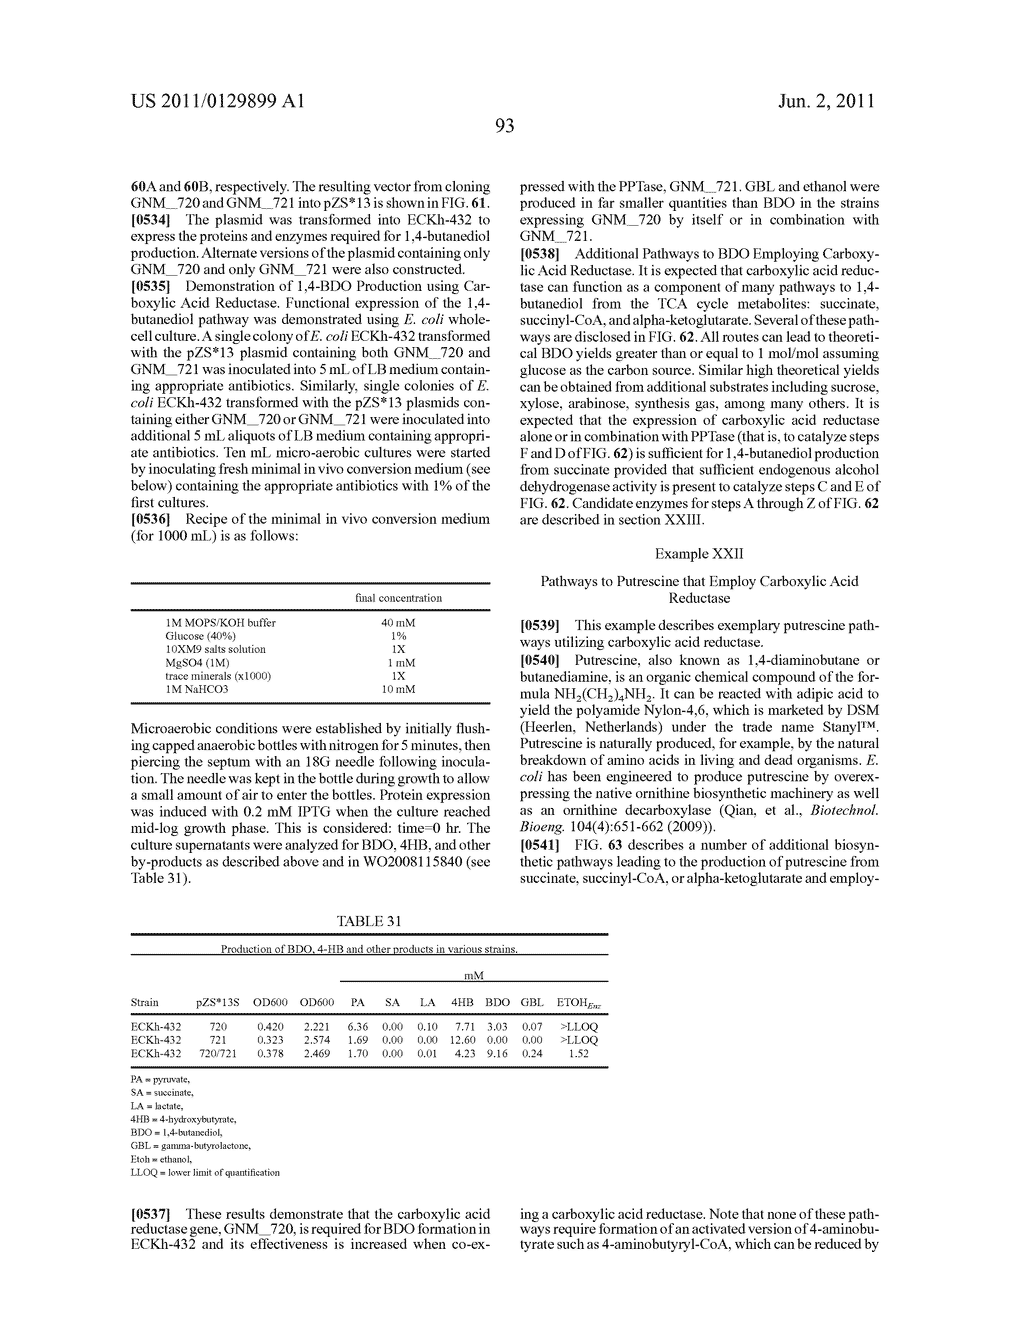 MICROORGANISMS FOR THE PRODUCTION OF 1,4-BUTANEDIOL, 4-HYDROXYBUTANAL,     4-HYDROXYBUTYRYL-COA, PUTRESCINE AND RELATED COMPOUNDS, AND METHODS     RELATED THERETO - diagram, schematic, and image 162